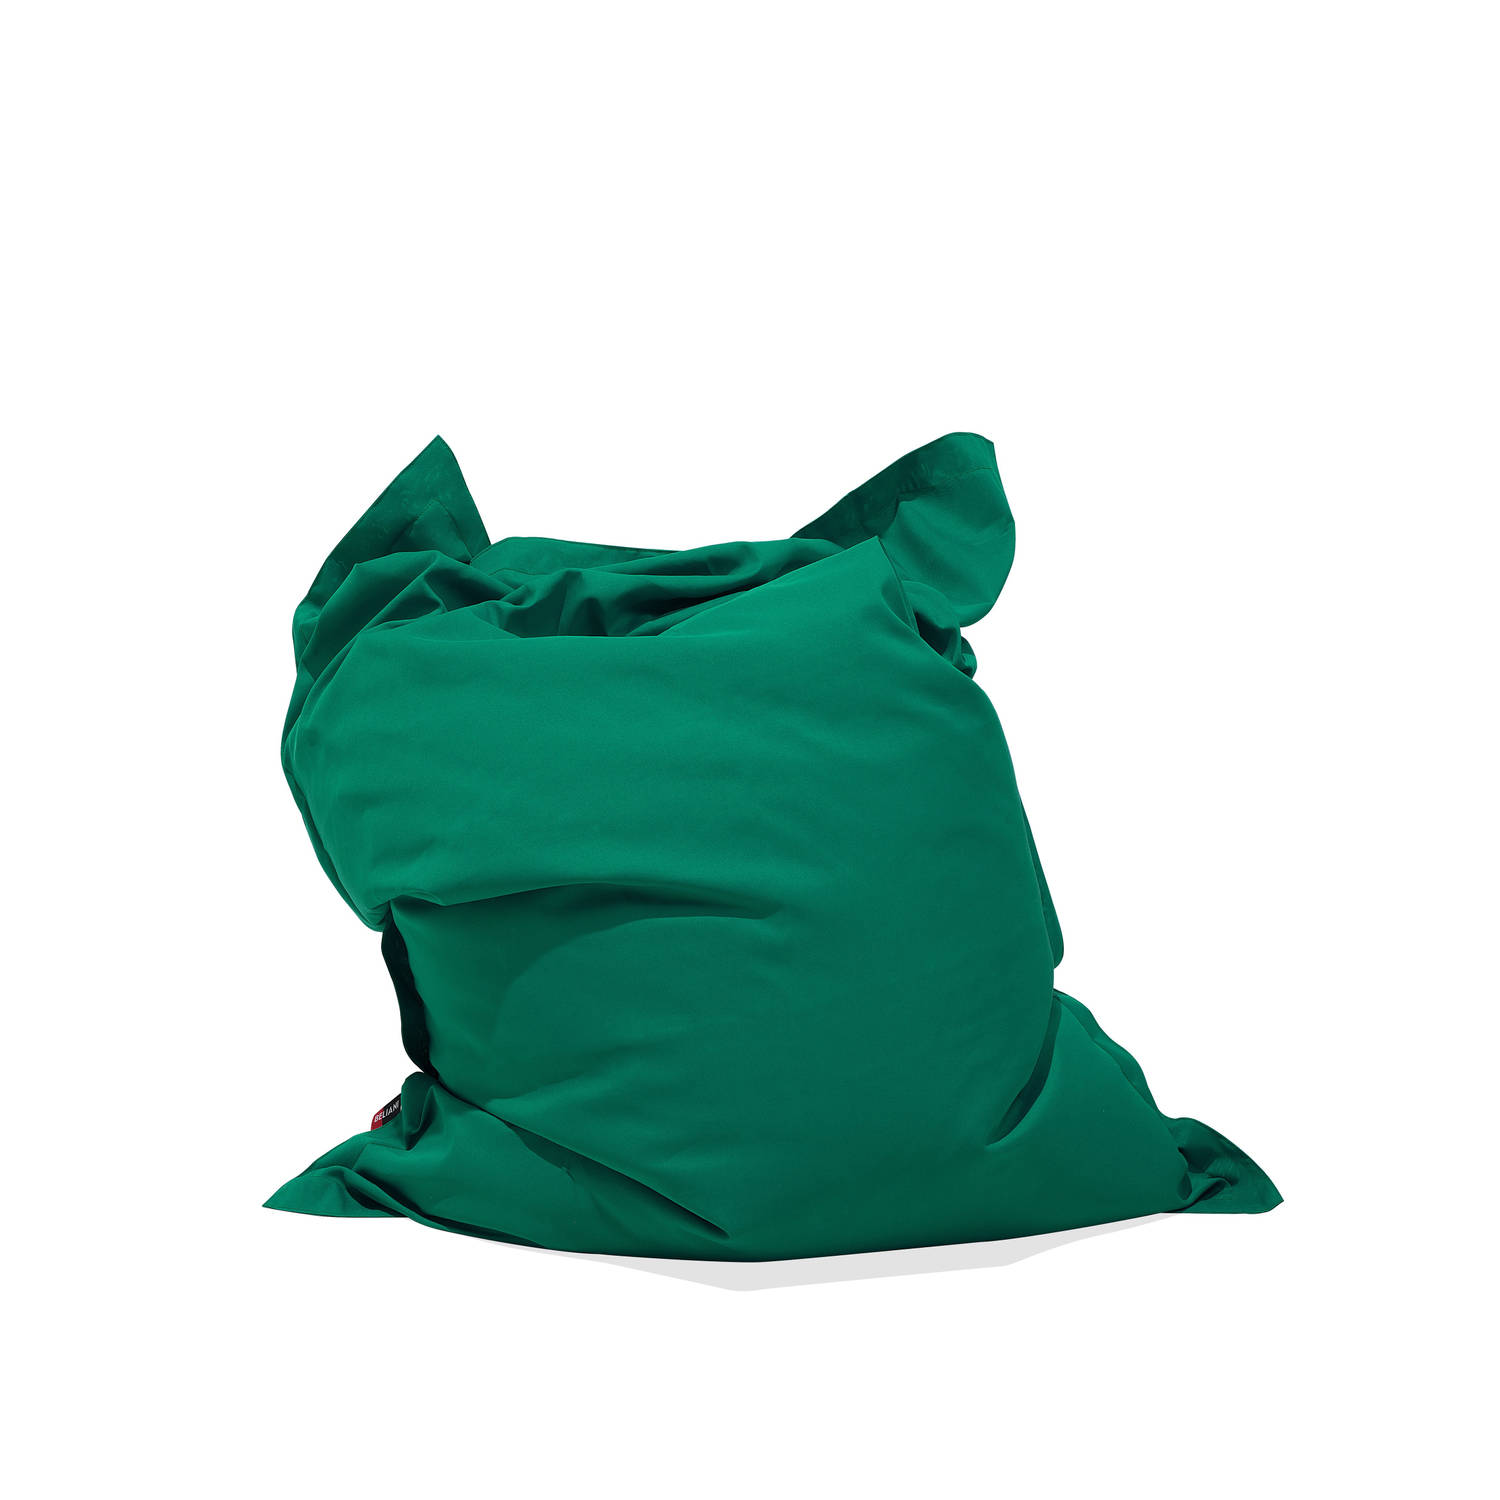 Big Bag Zitzak.Beliani Bean Bag Big Zitzak Groen 140 X 180 Cm Shop Via Interieur